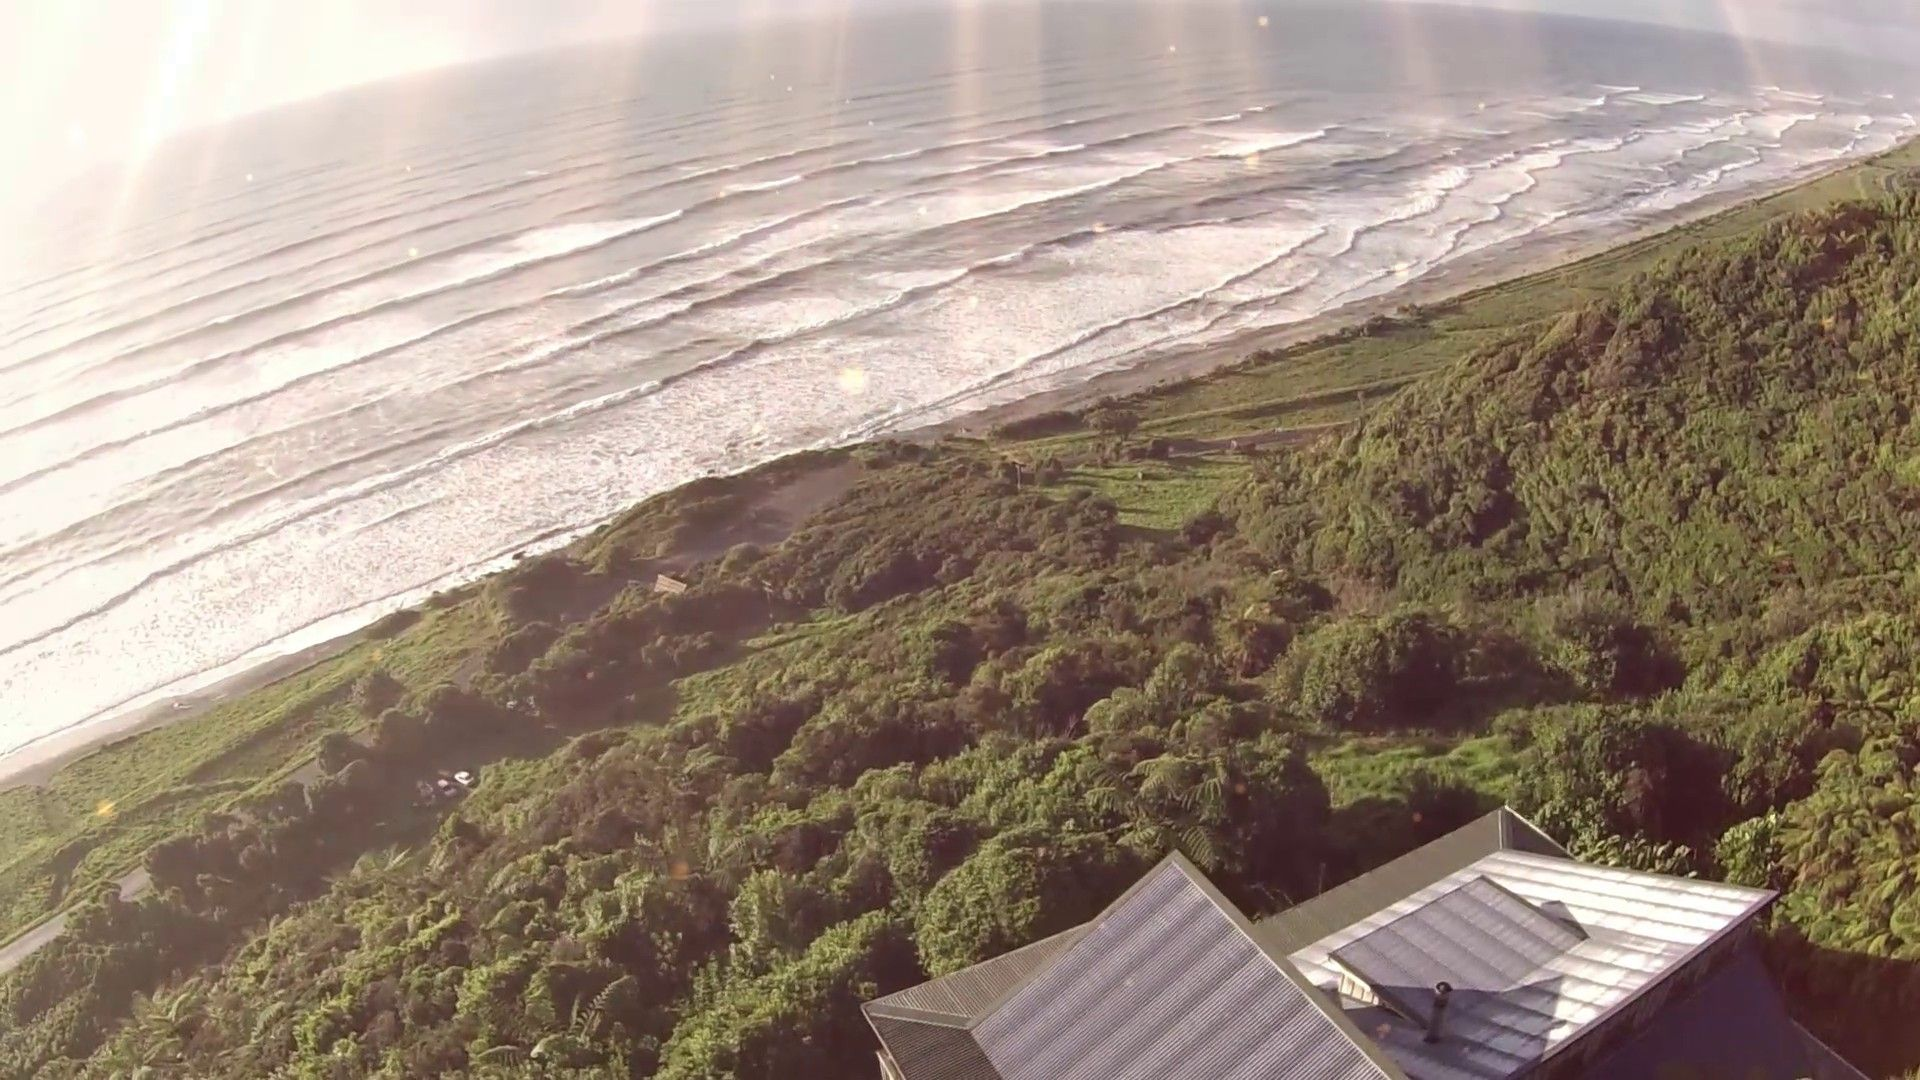 Aerial view of the Old Slaughterhouse & the Tasman Sea